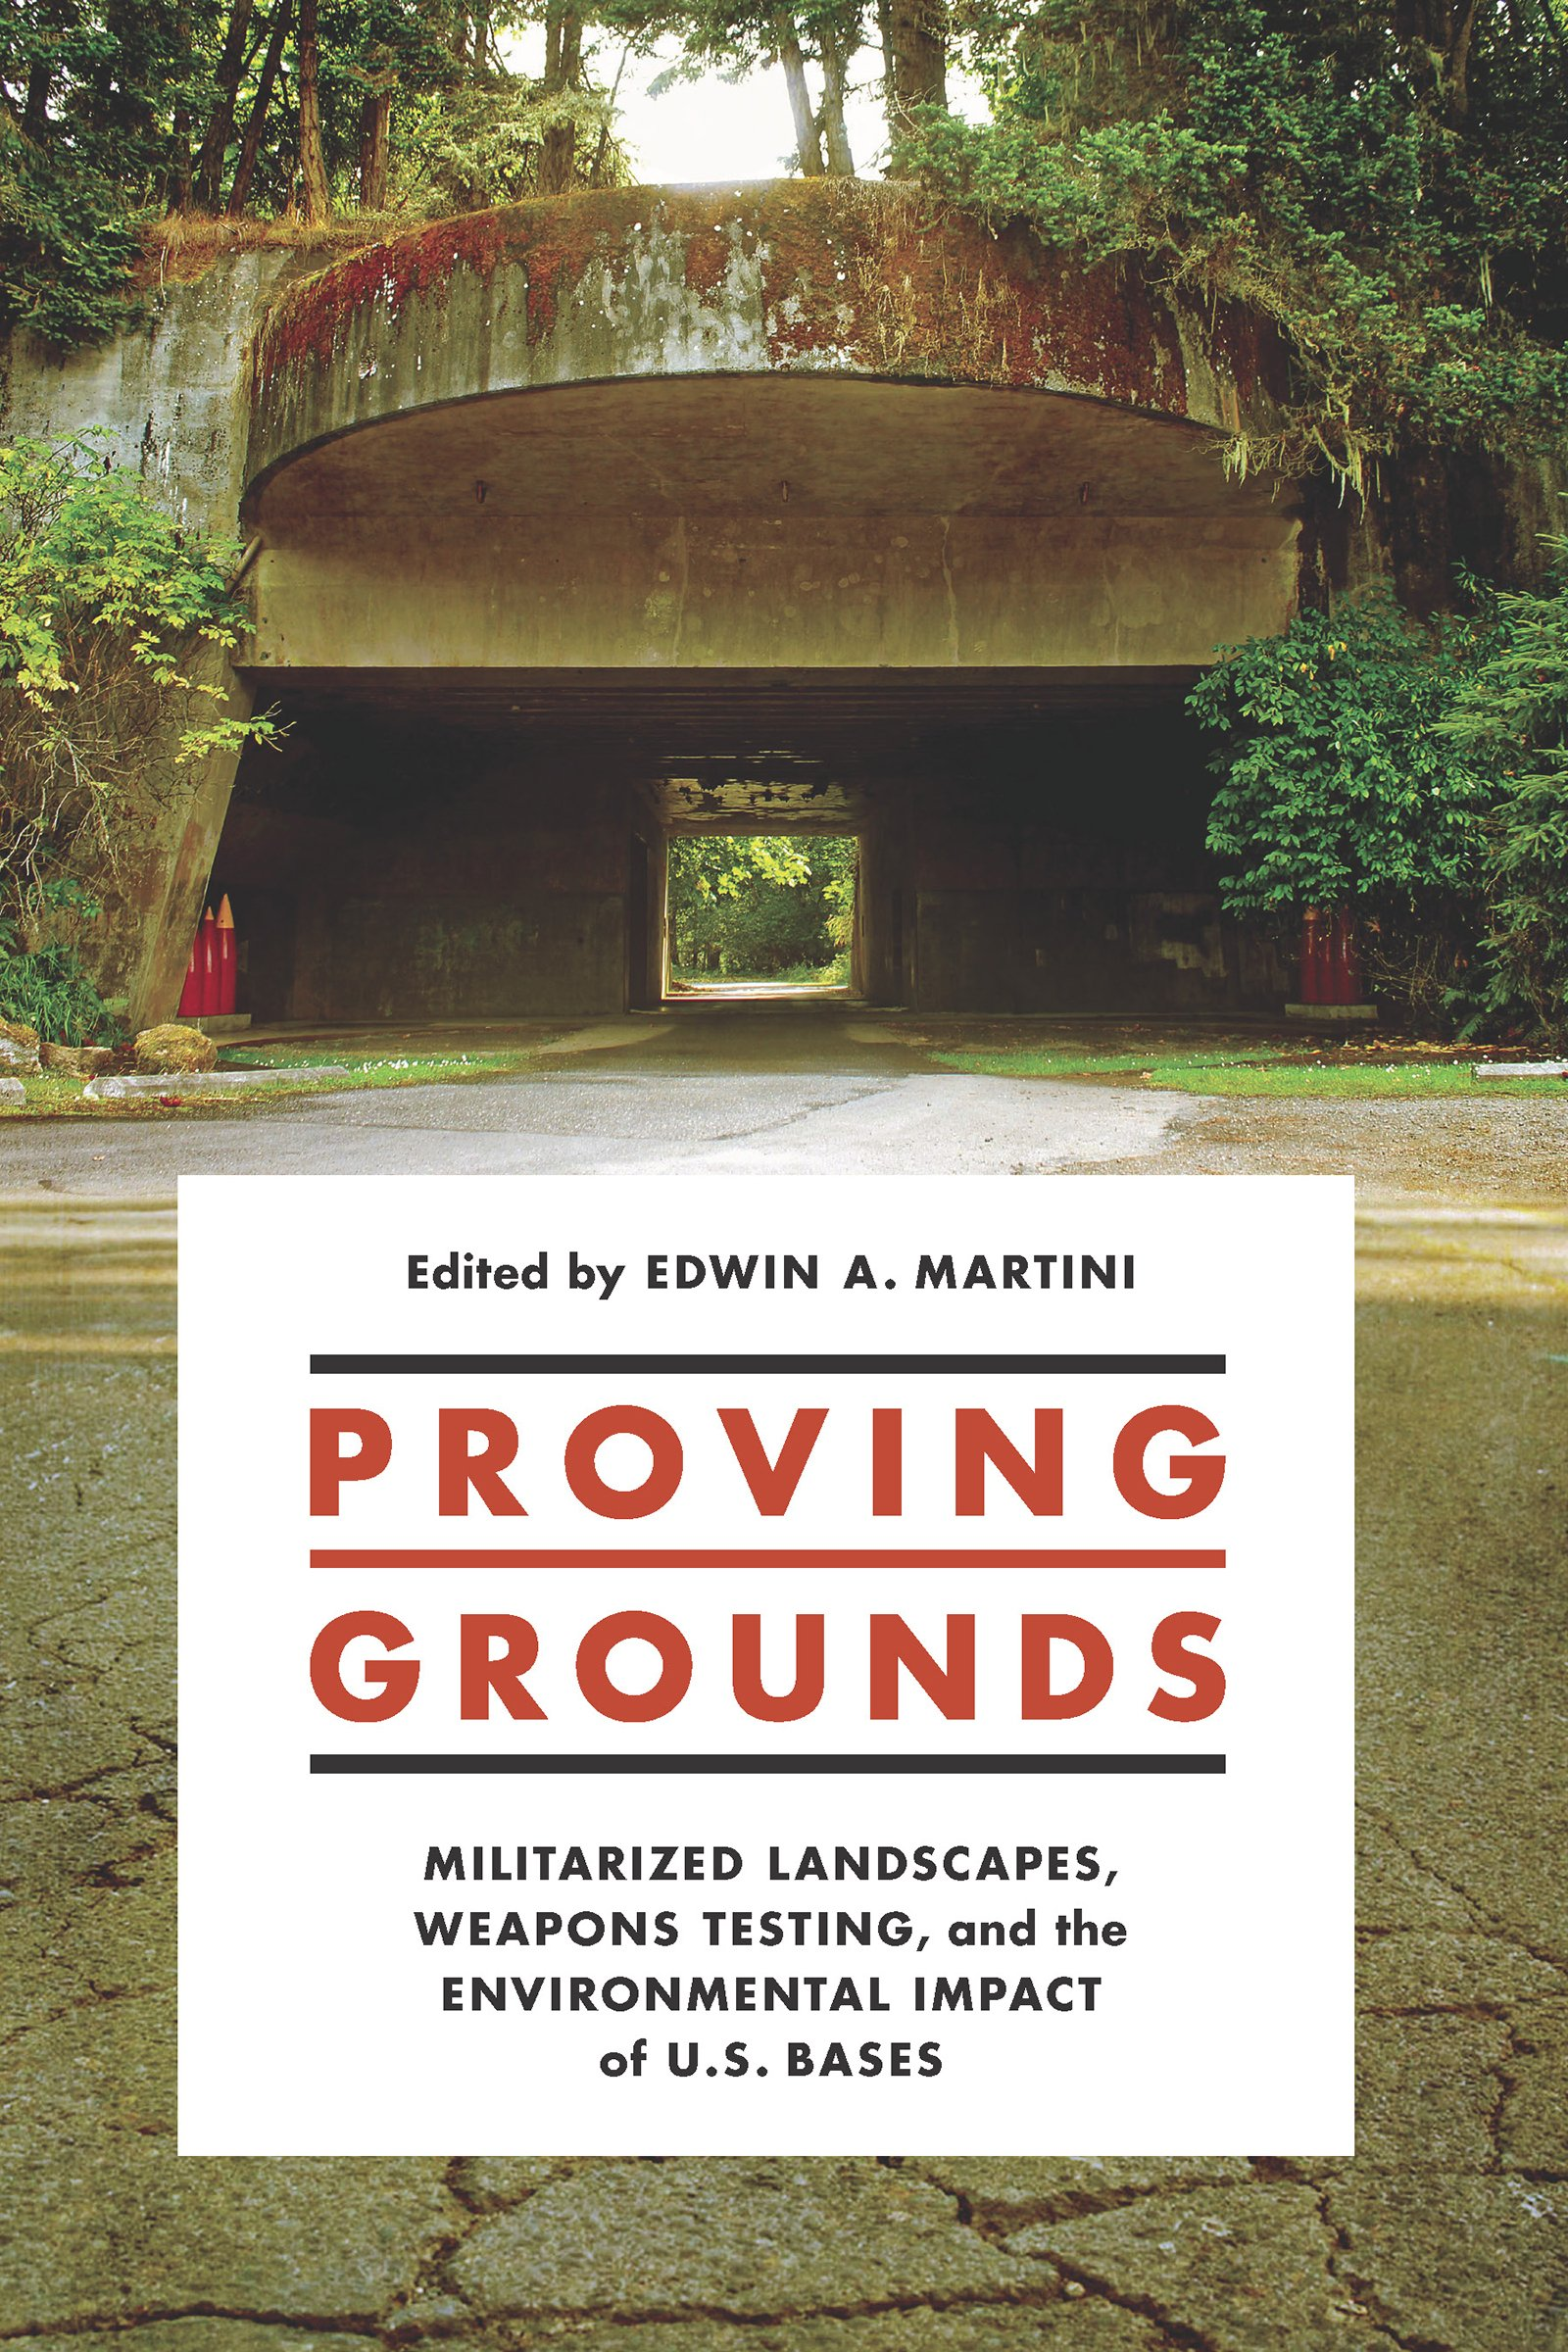 Download Proving Grounds: Militarized Landscapes, Weapons Testing, and the Environmental Impact of U.S. Bases (Donald R. Ellegood International Publications) ebook